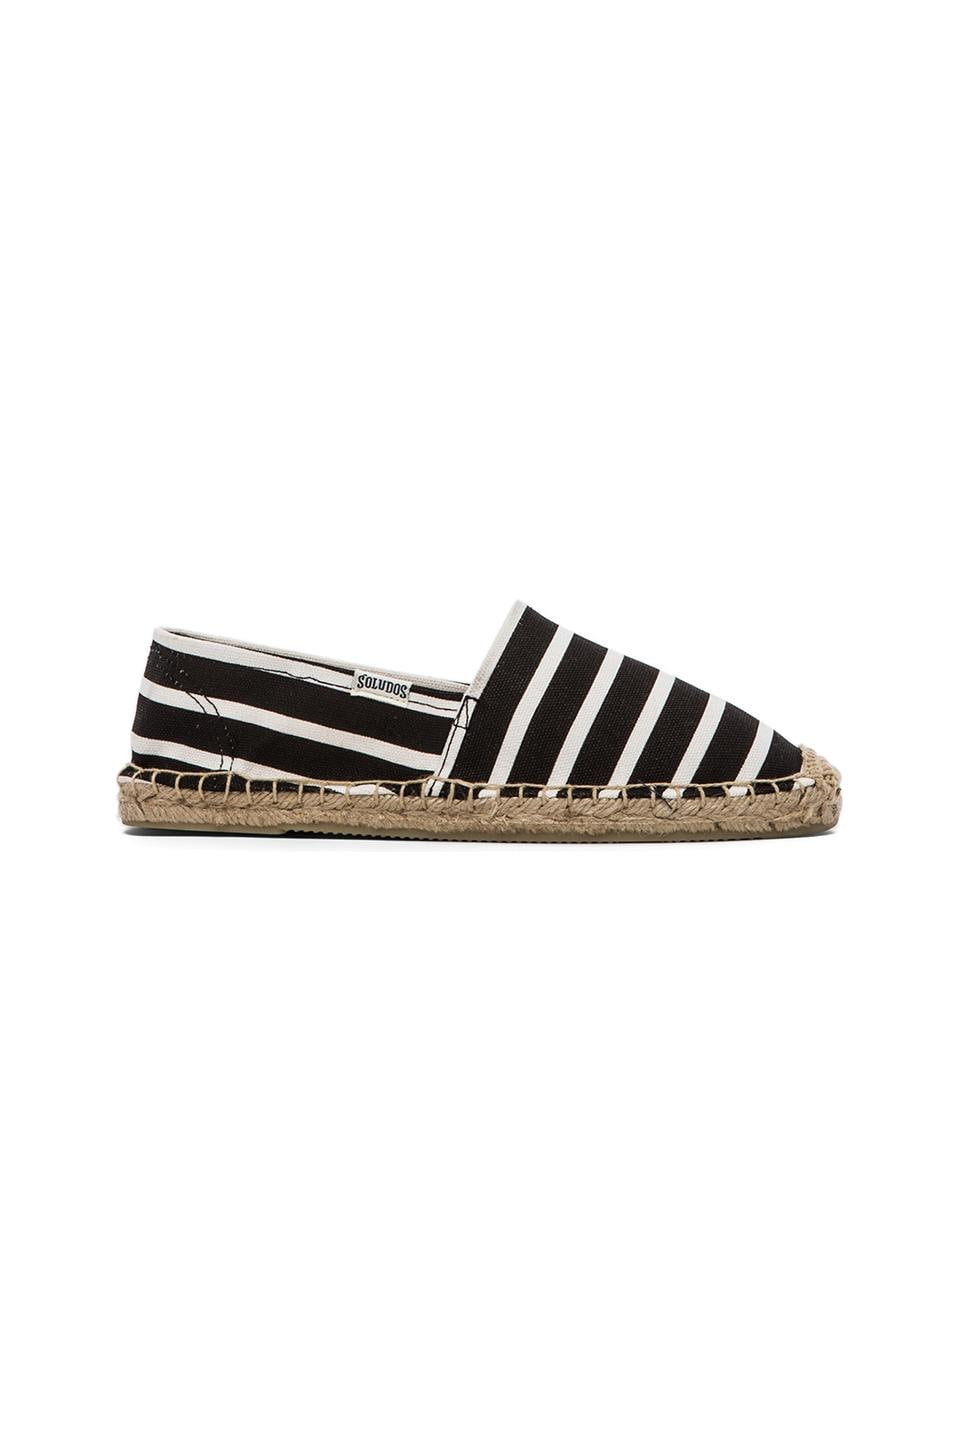 Soludos Classic Stripe Flat in Black Stripe